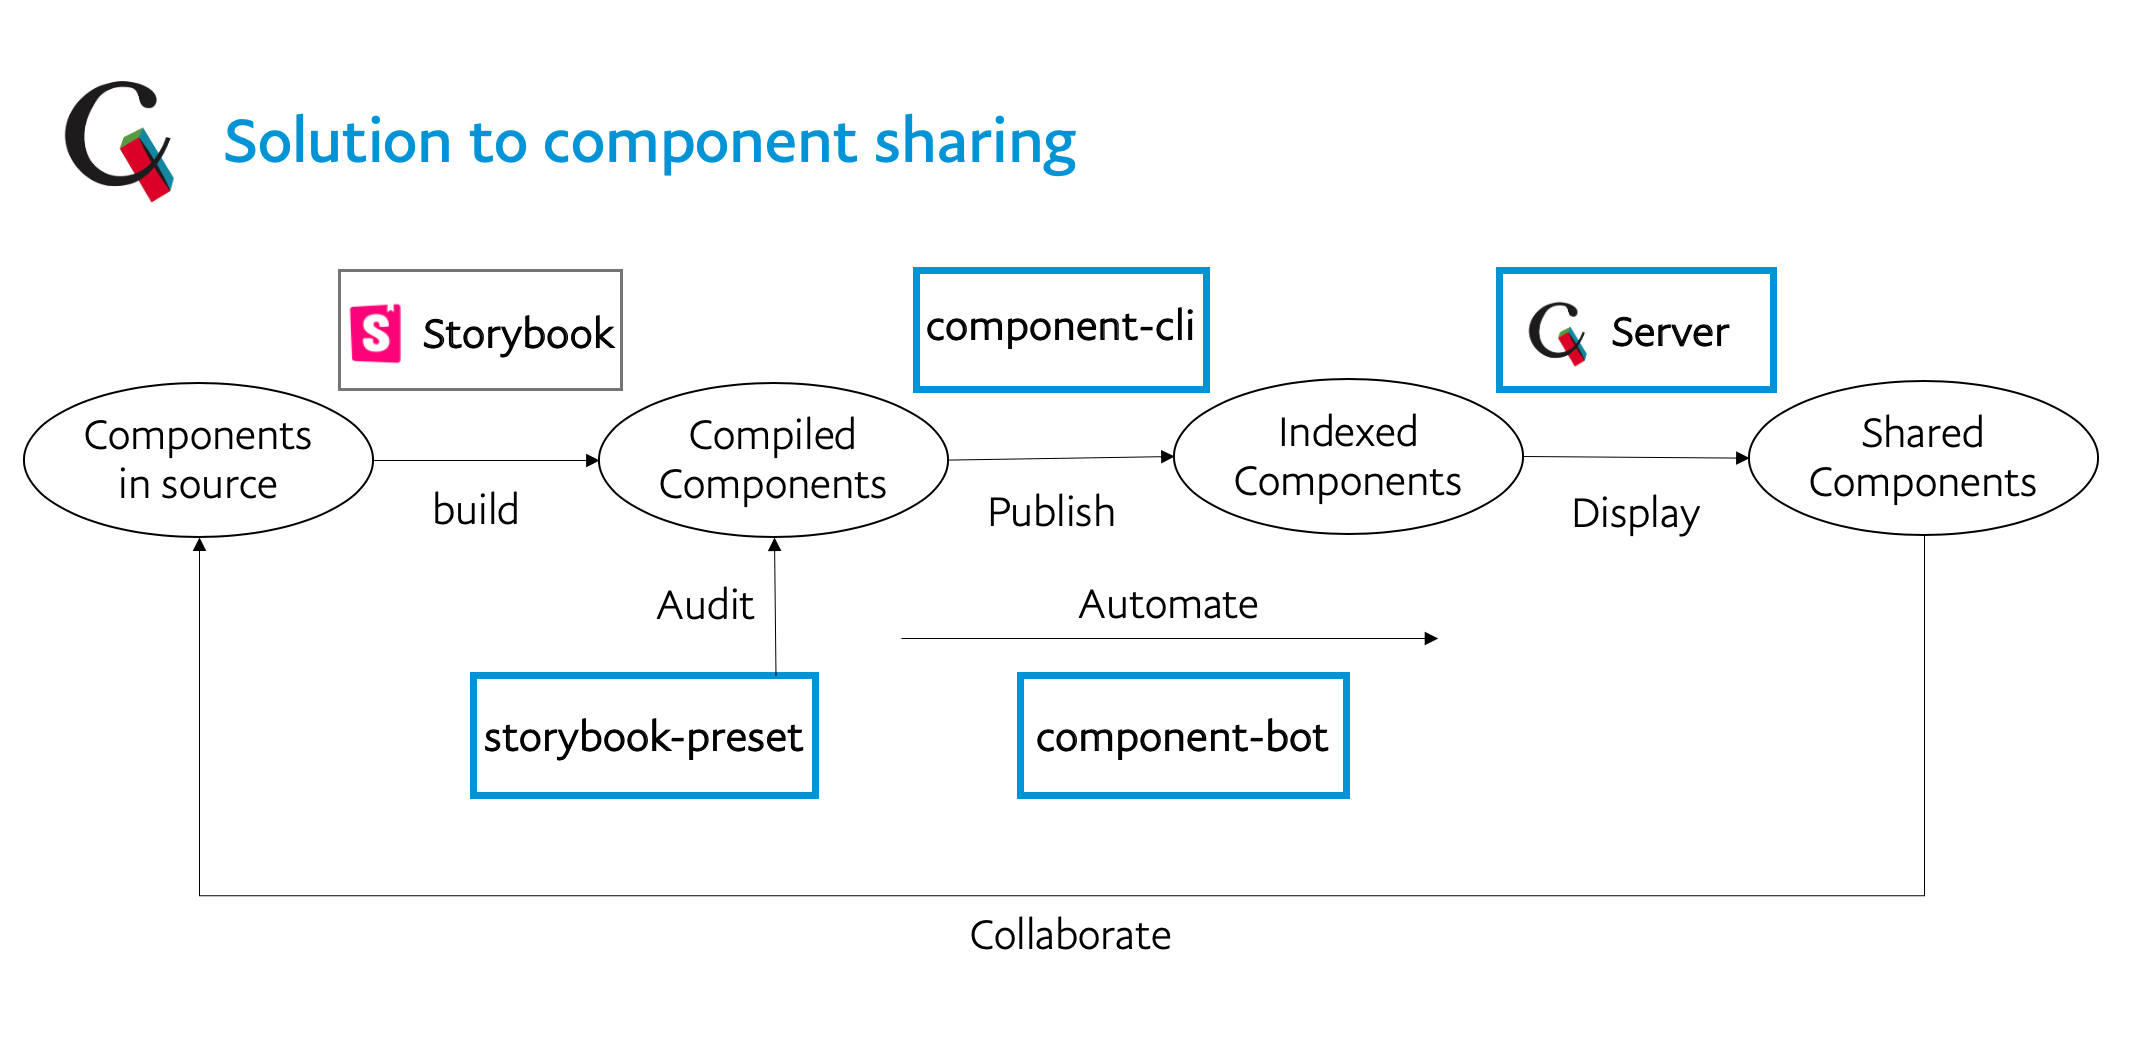 Paypal solution to component sharing